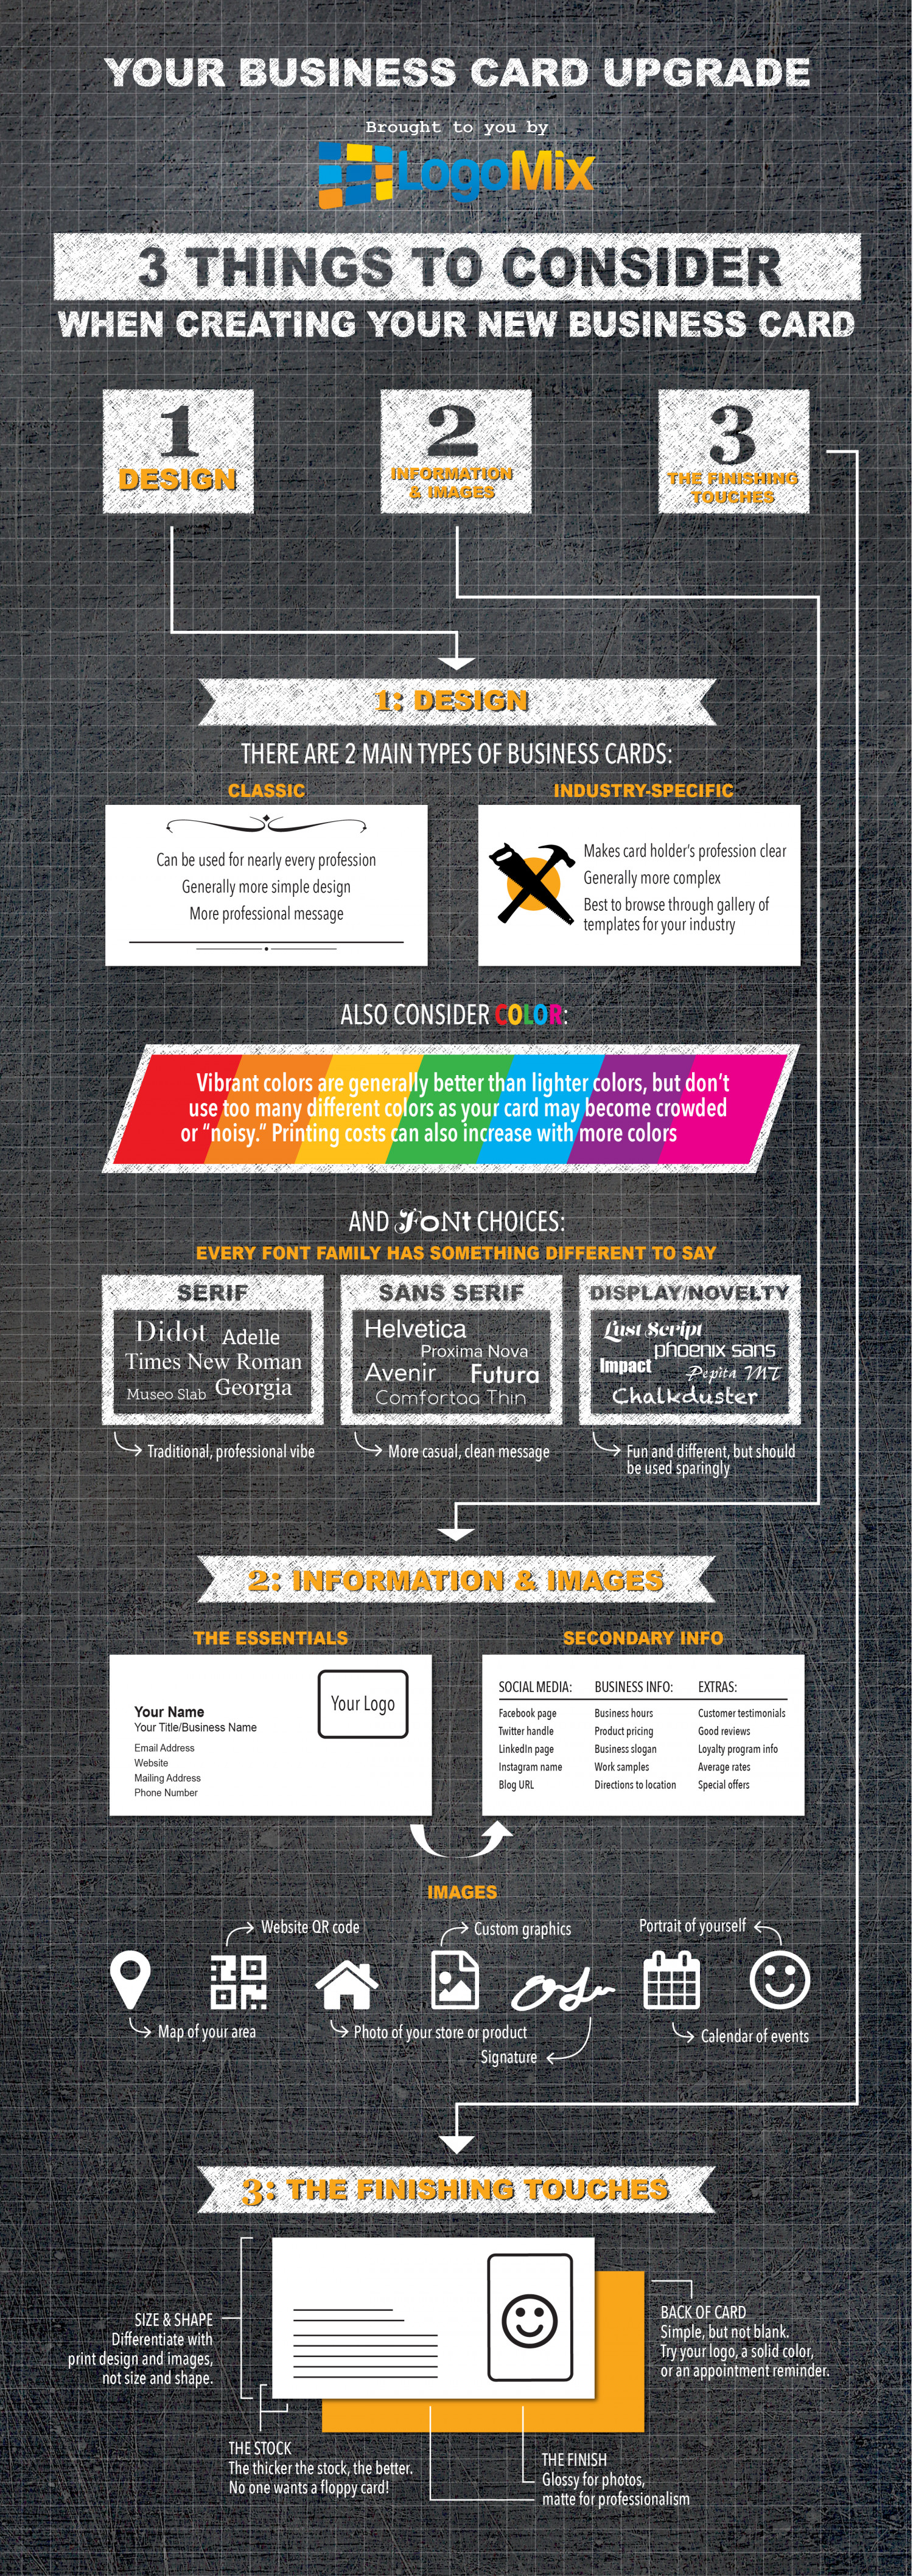 The 21st Century Business Card Infographic